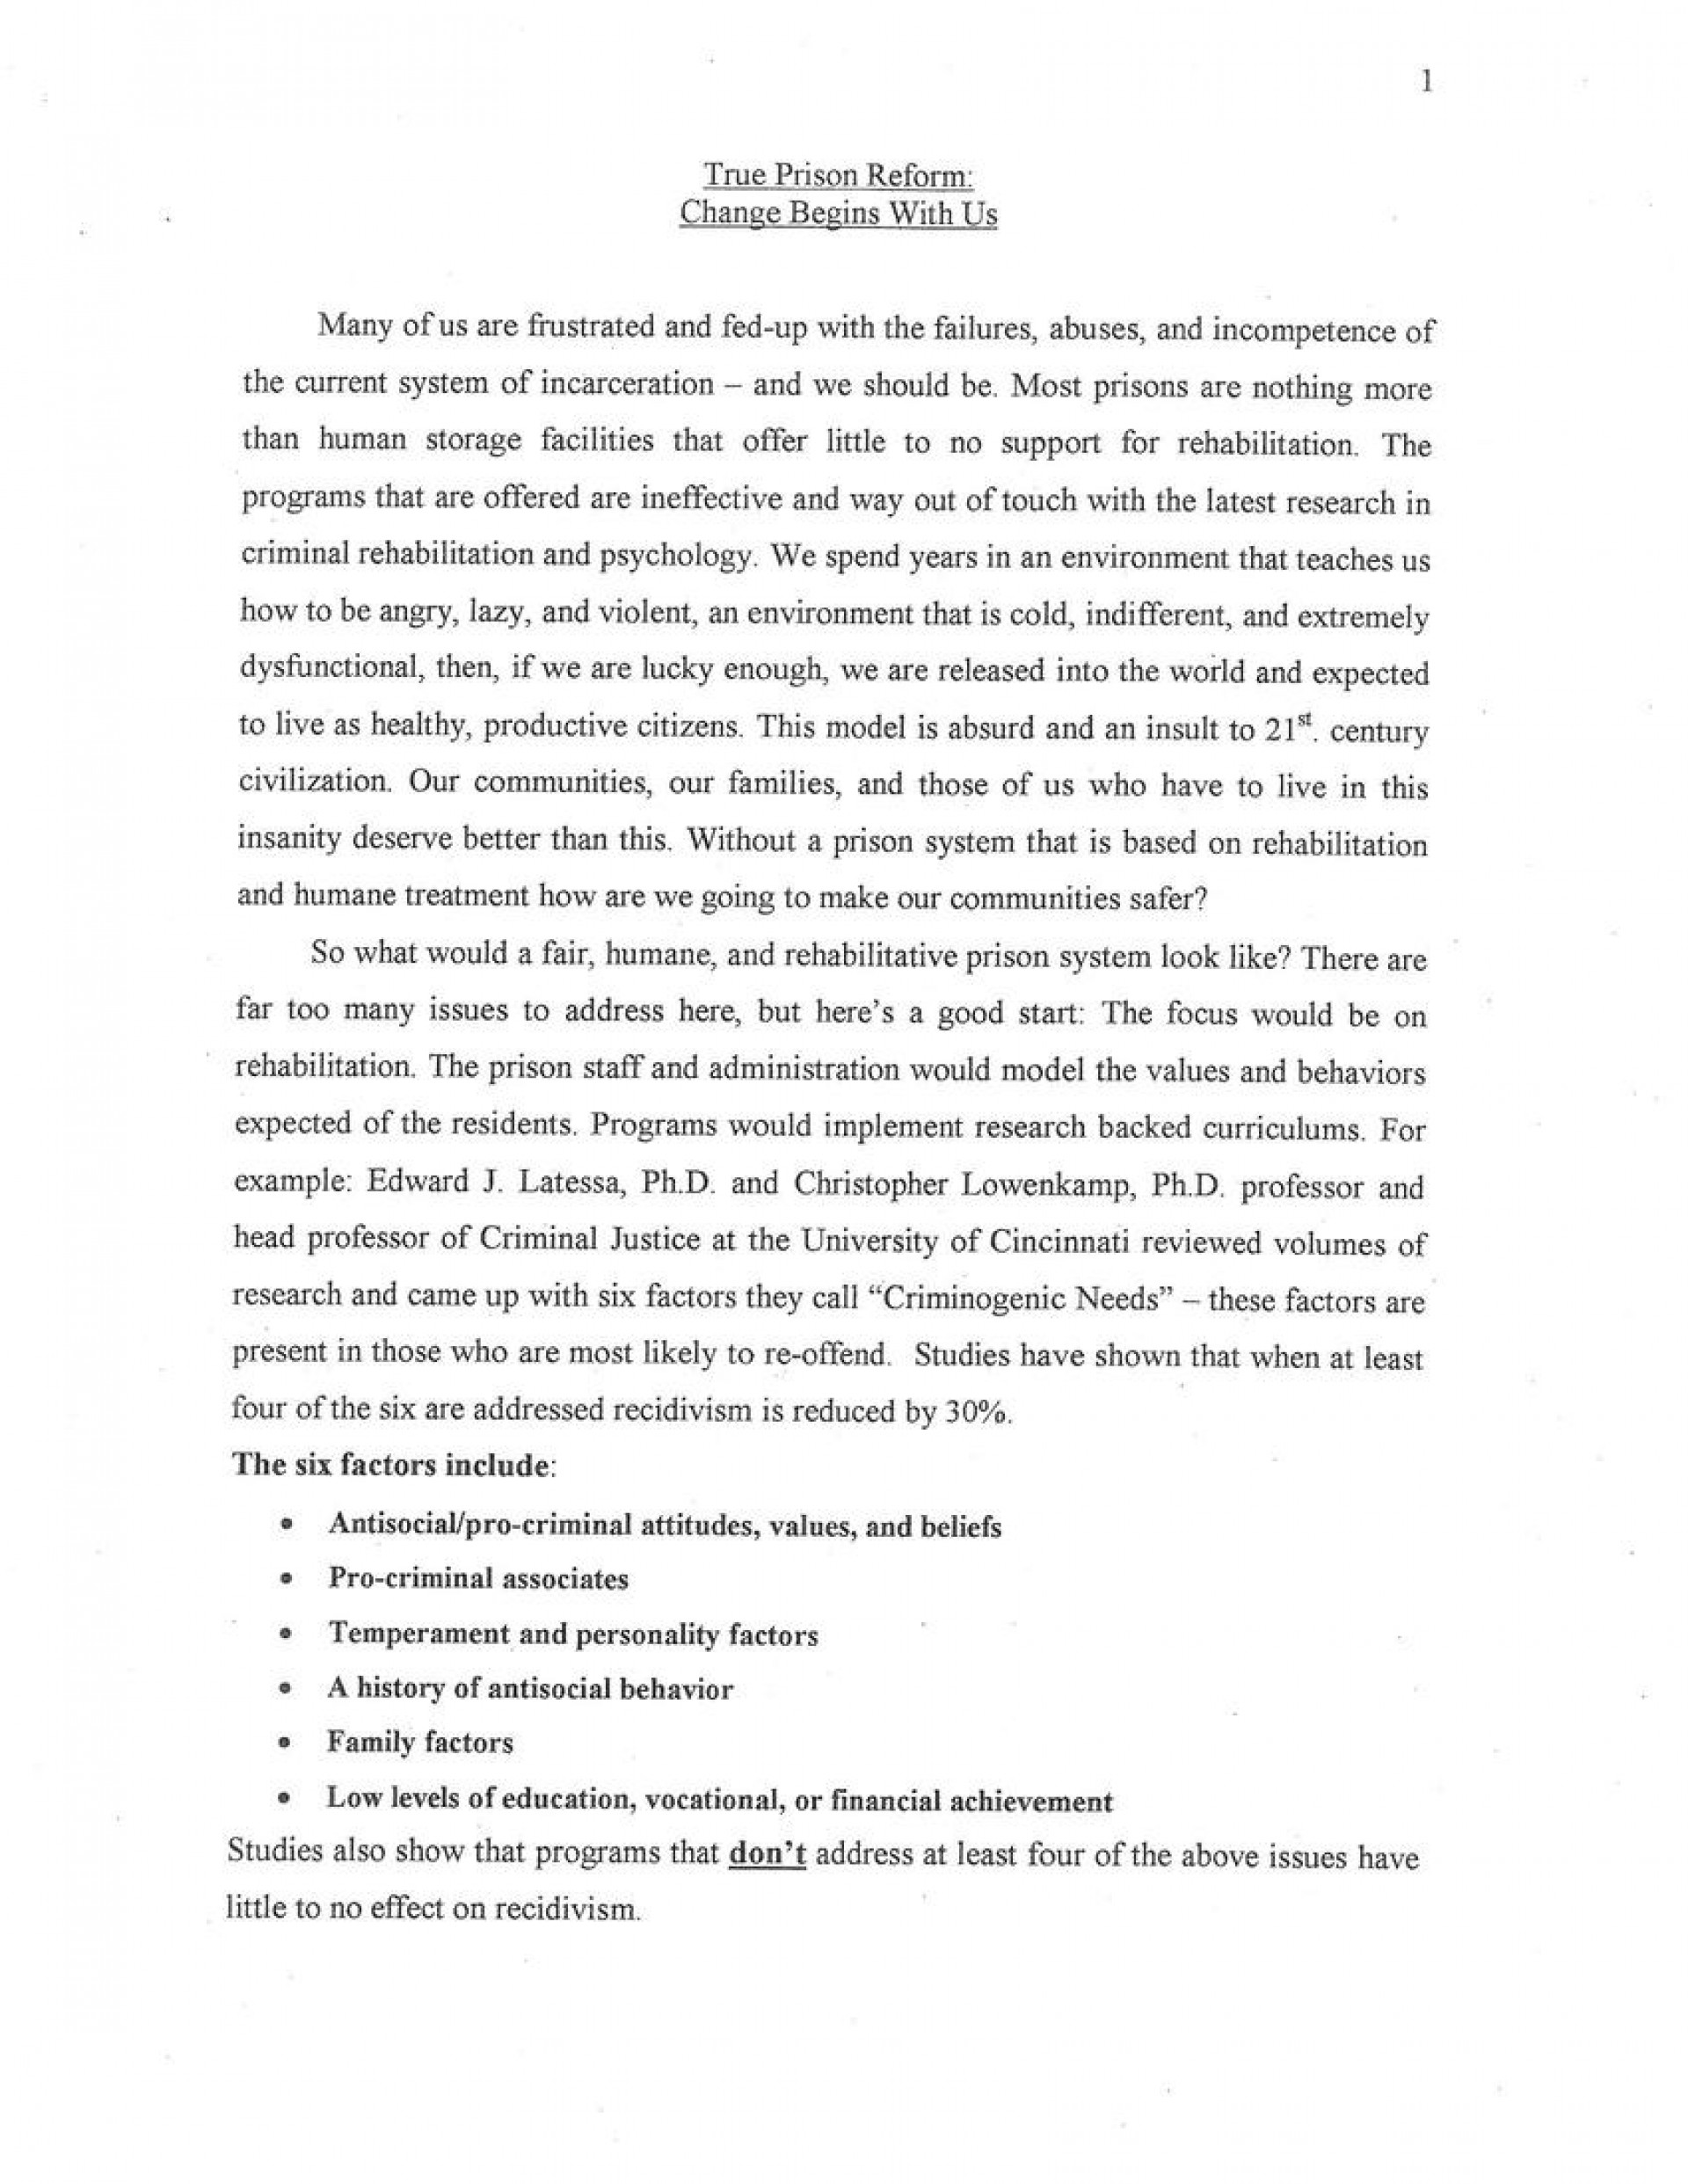 023 sample profile essay essayss on a person of 2